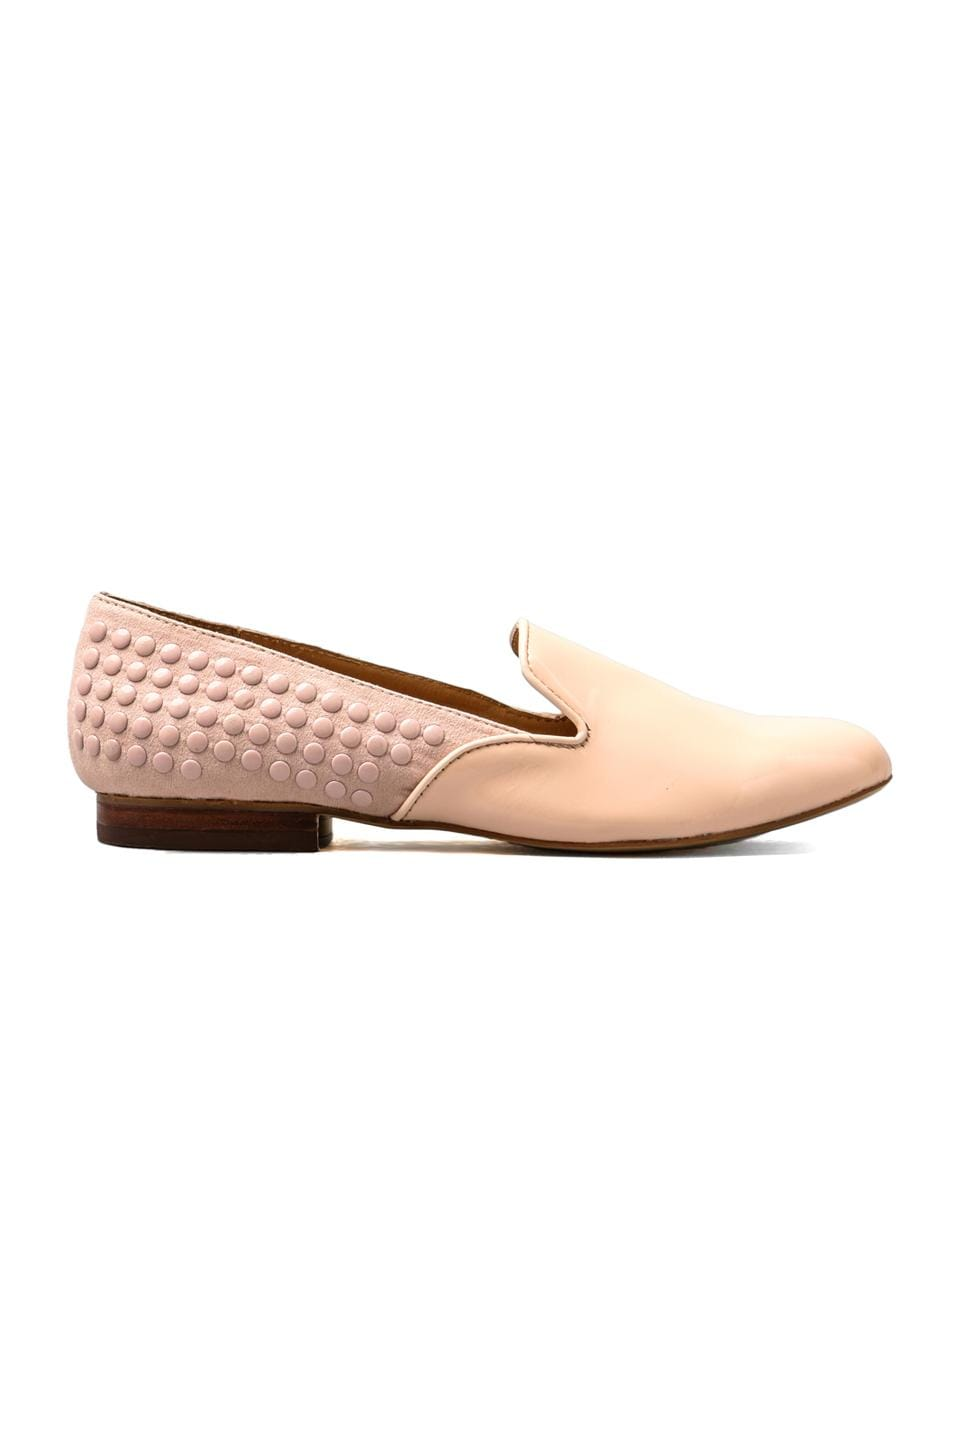 Kelsi Dagger Fabricia Loafer in Pink